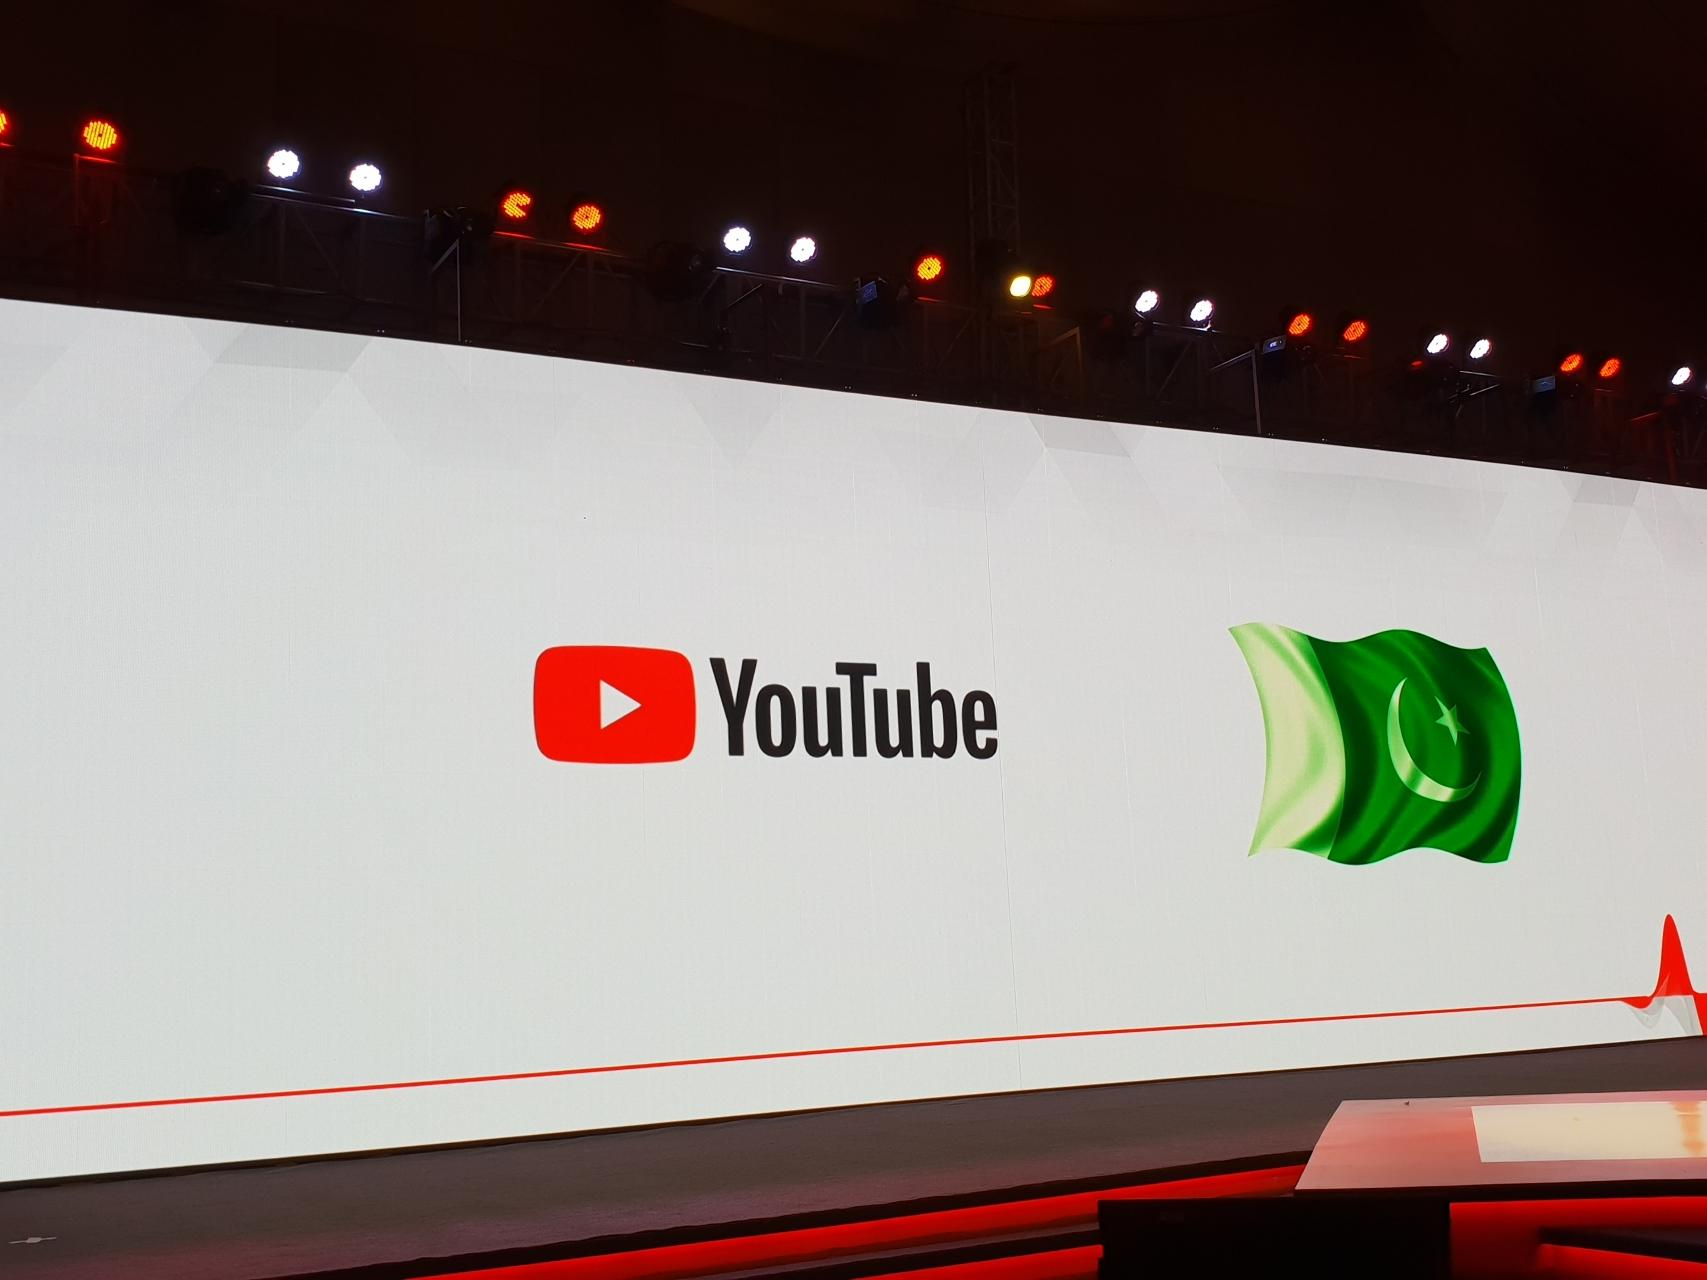 YouTube tools Can Drive Commercial Goals for Advertisers: GroupM